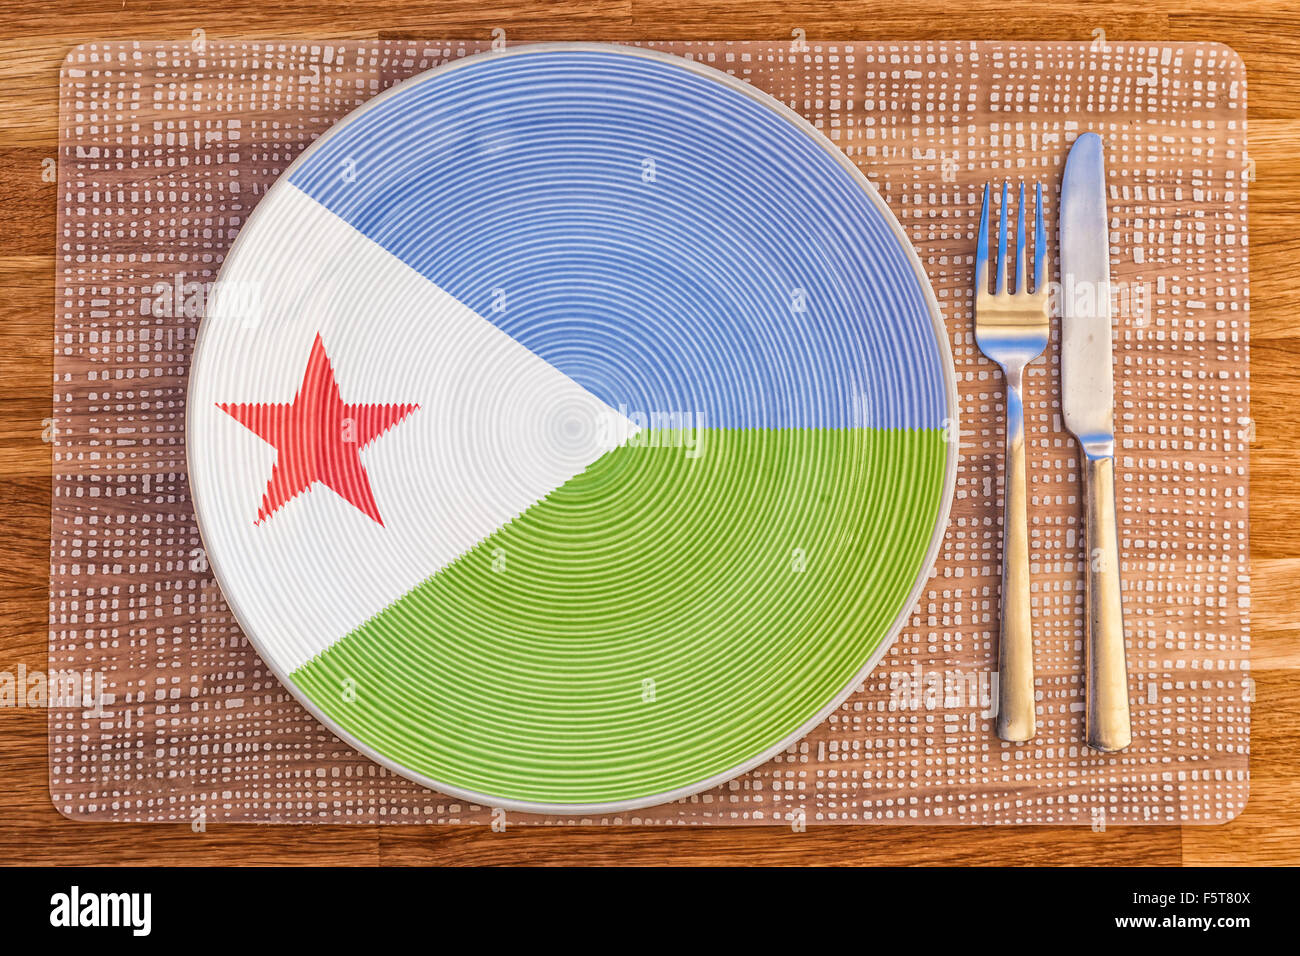 Dinner plate with the flag of Djibouti on it for your international food and drink concepts. Stock Photo